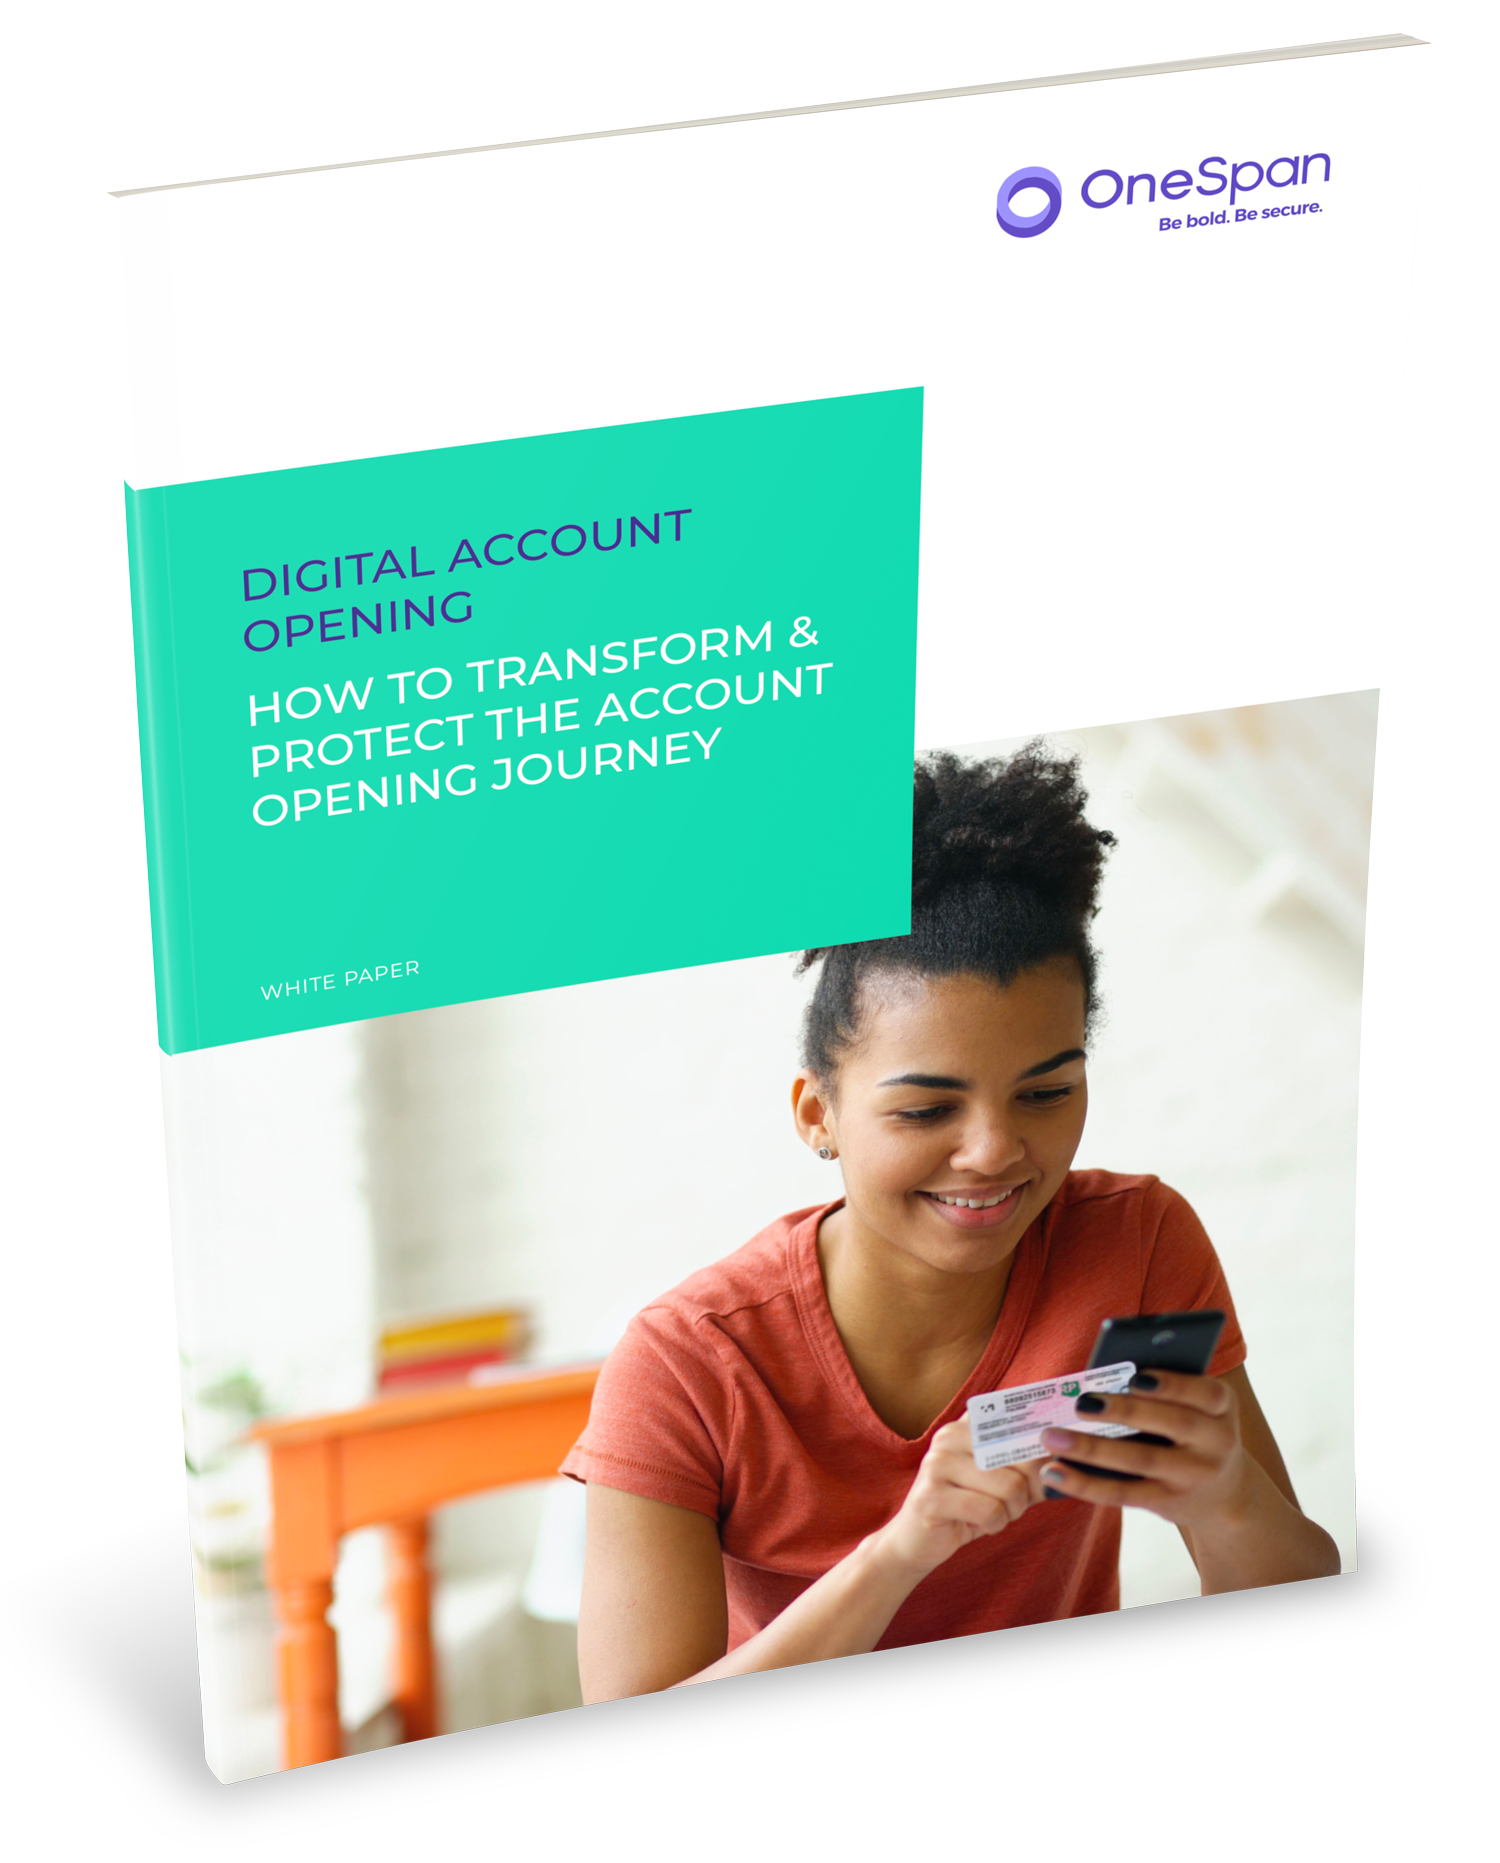 Digital Account Opening: How Banks Can Transform & Protect The Customer Journey